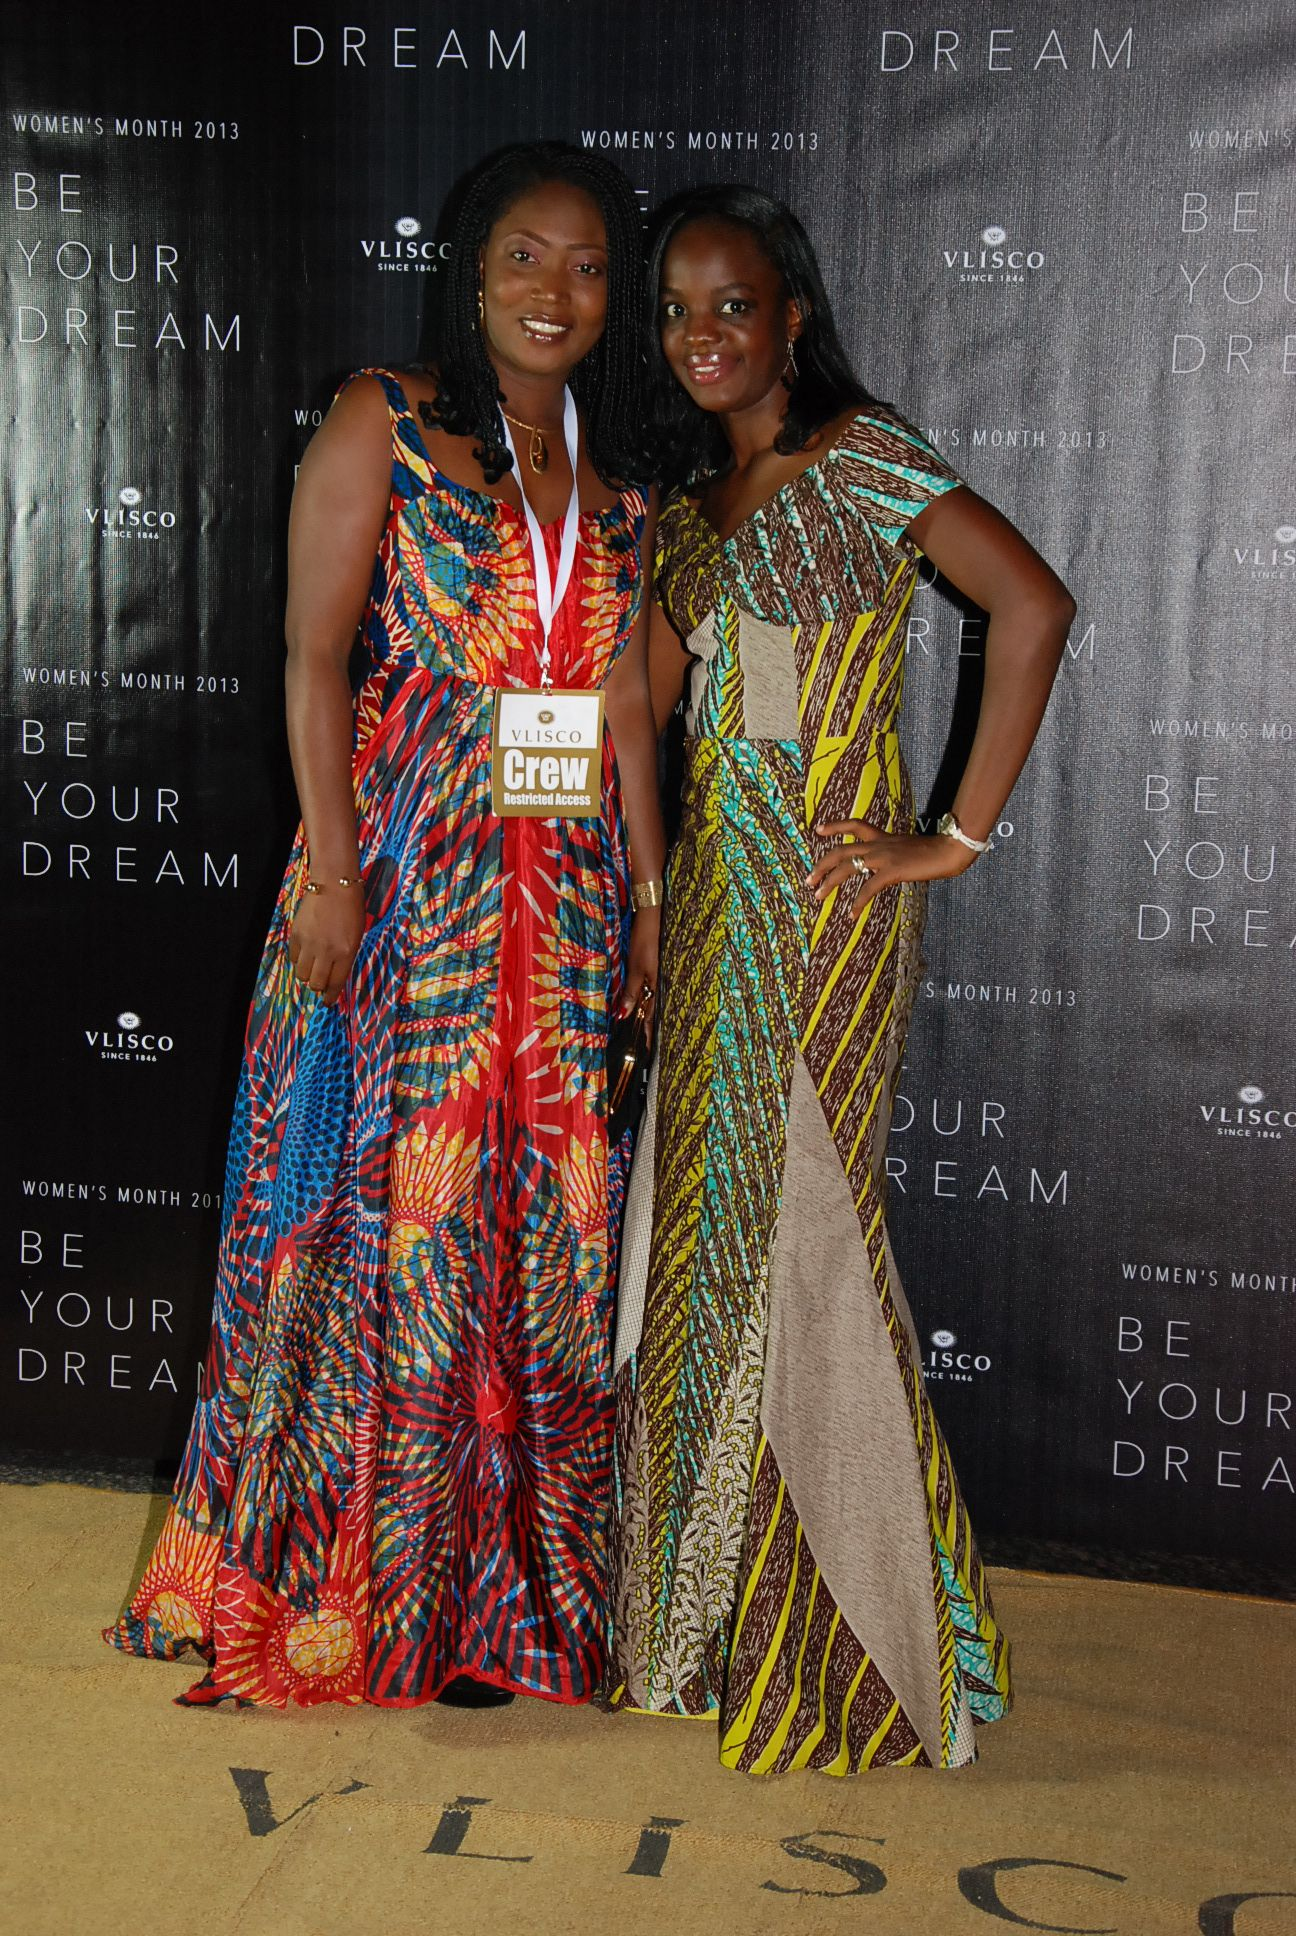 """Enjoy a glimpse of the Vlisco Dutch Wax Textile Co. initiative, """"Be Your Dream"""" Award Nights held in several African countries. More information you'll find at: http://beyourdream.vlisco.com"""